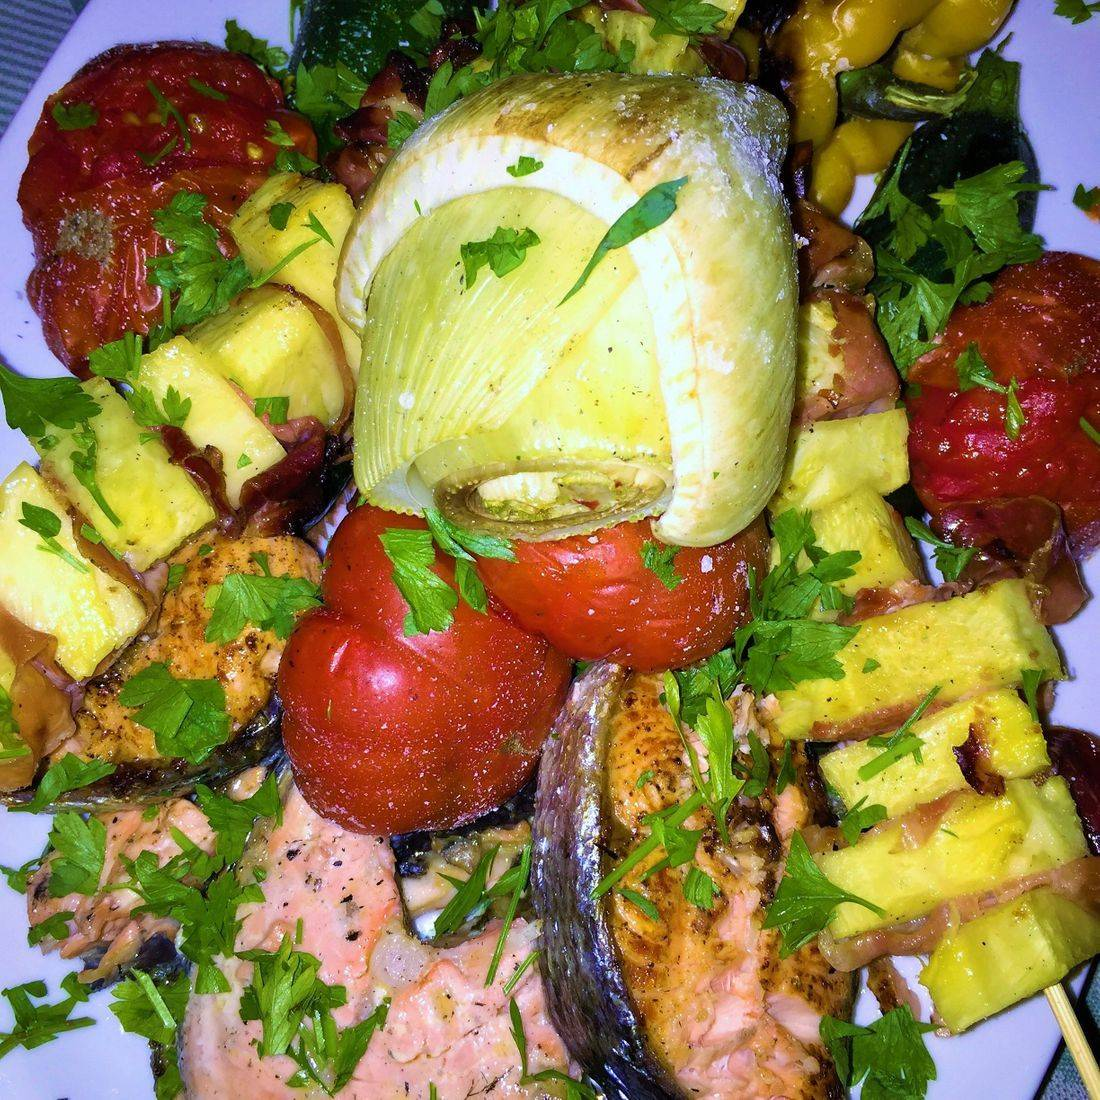 grilled veggies and salmon